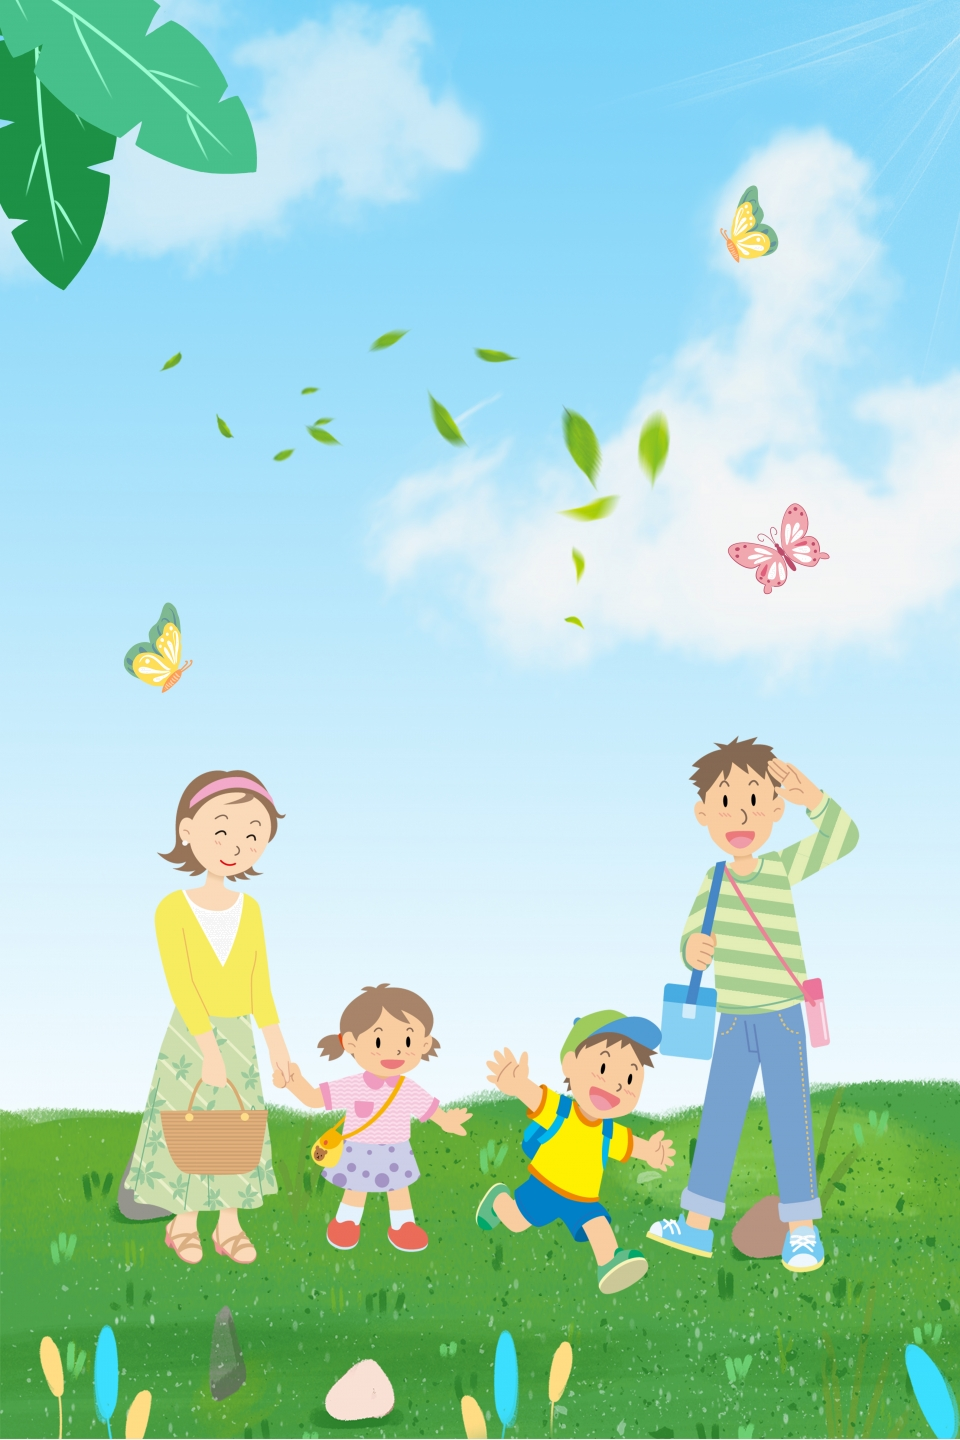 Happy Family To Travel Happy Family Travel Family Background Image For Free Download